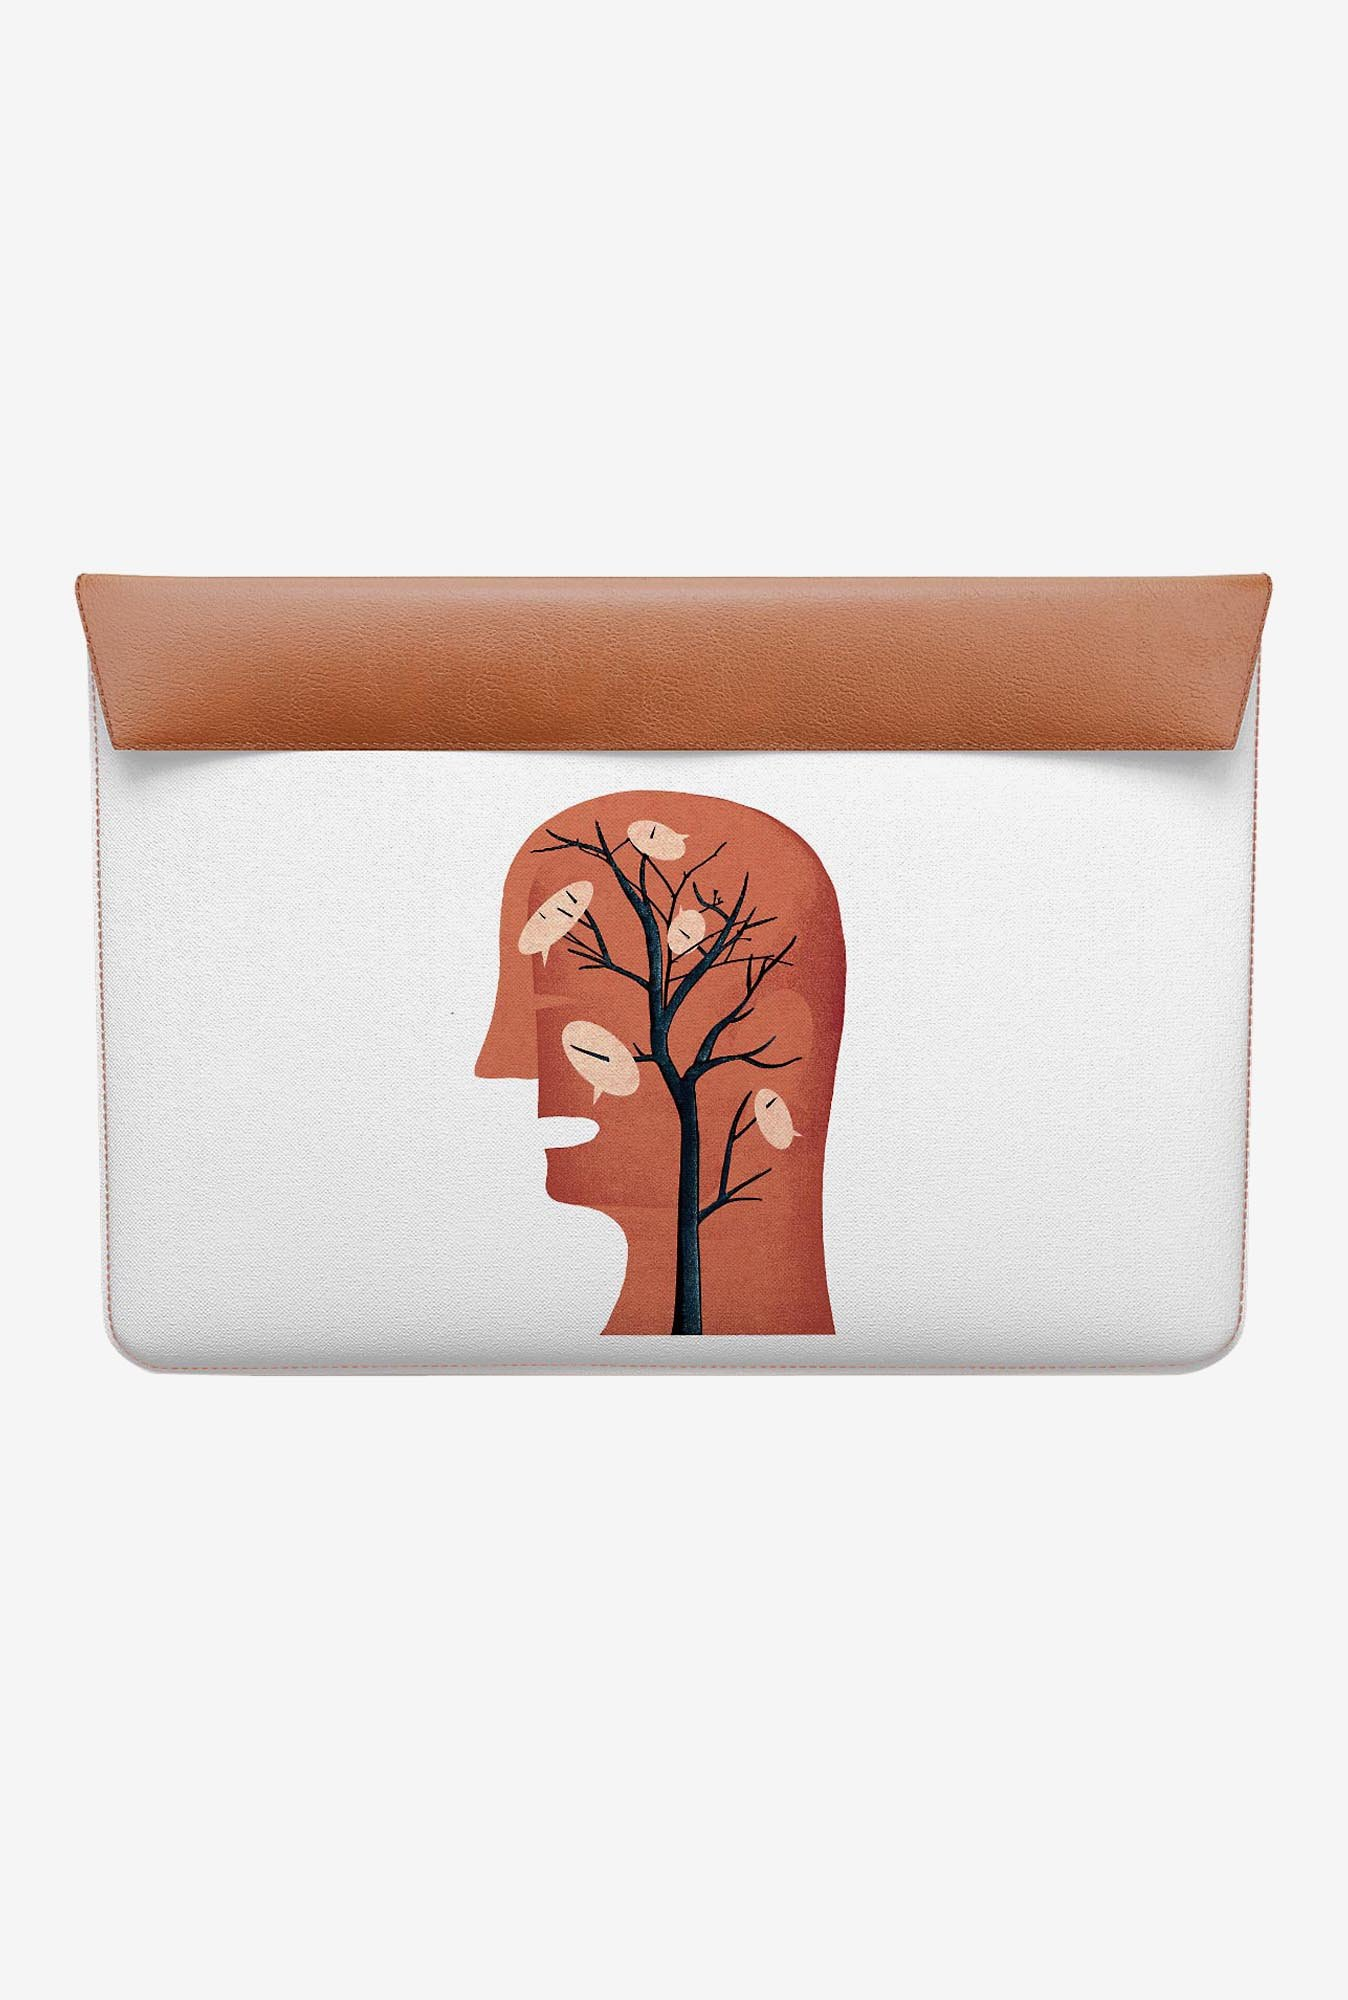 DailyObjects Unspoken Thought MacBook Air 11 Envelope Sleeve